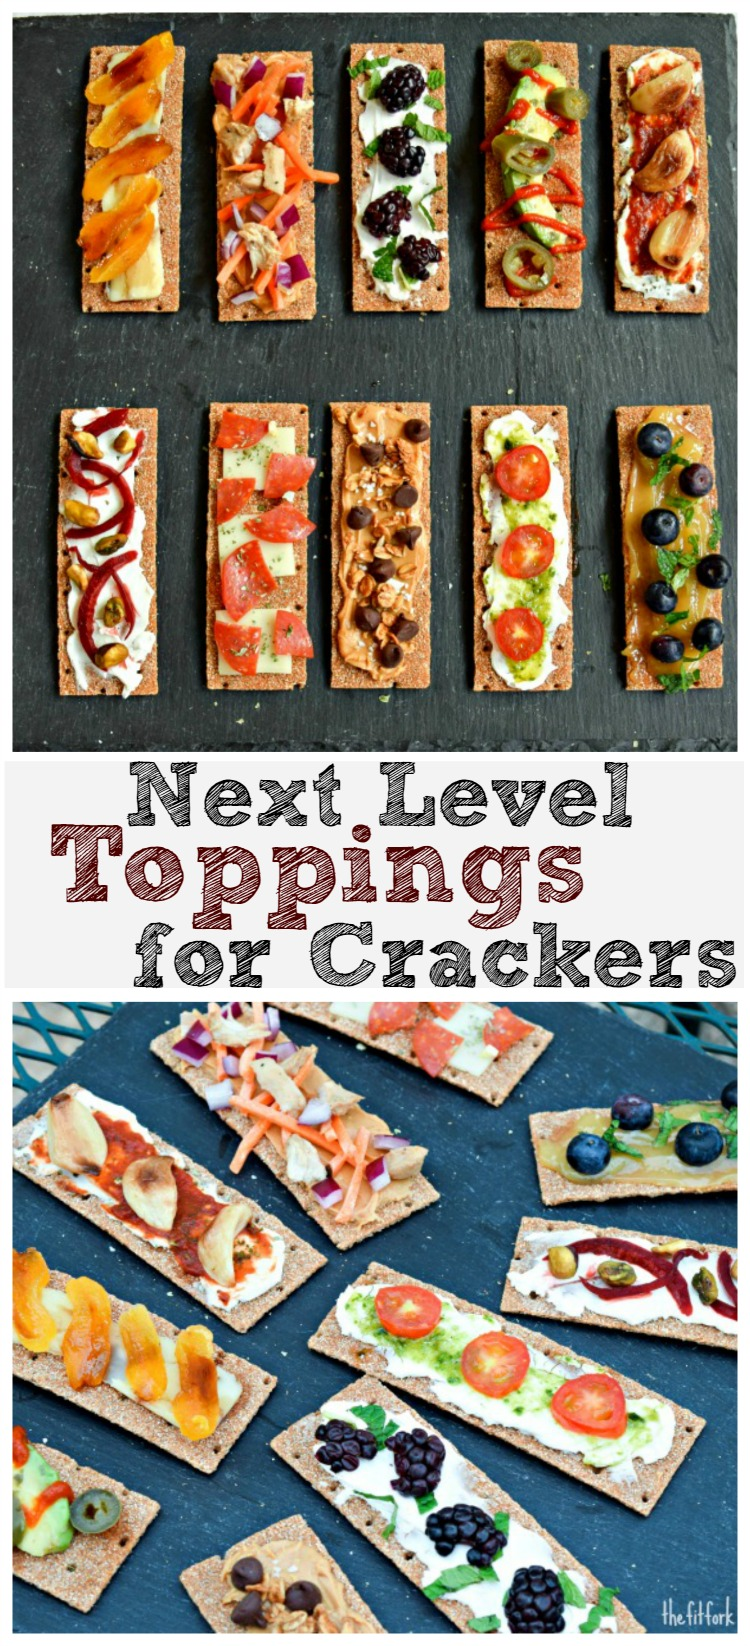 These Next Level Cracker Toppings are an easy yet elegant appetizer for a party, celebration or just snacking!